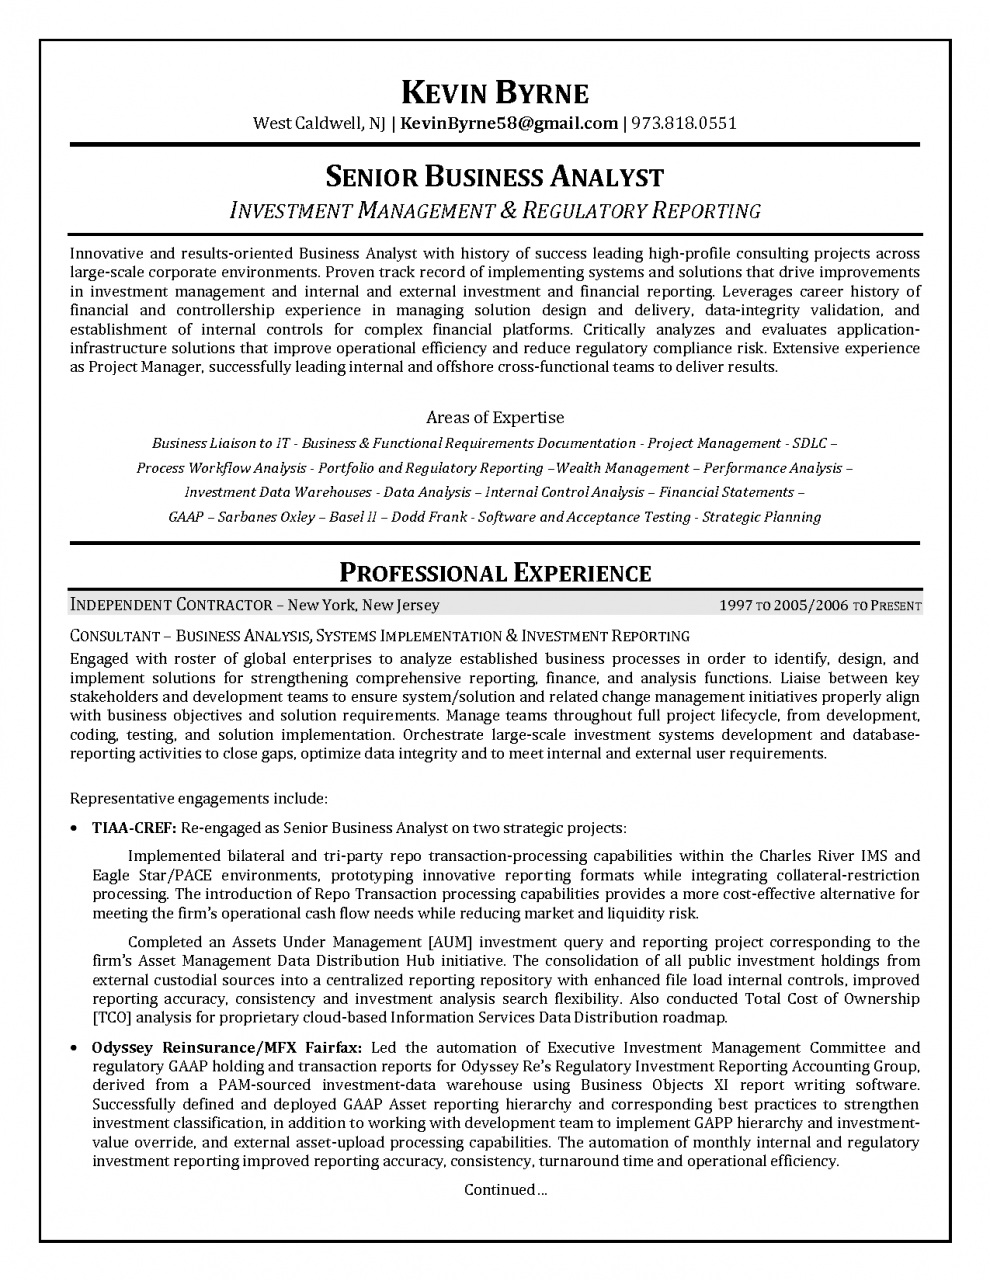 Resume. Senior Business Analyst Resume Format Business Analyst Senior Resume  Workbloom 135933271 Sample Resume For  Sample Business Analyst Resume